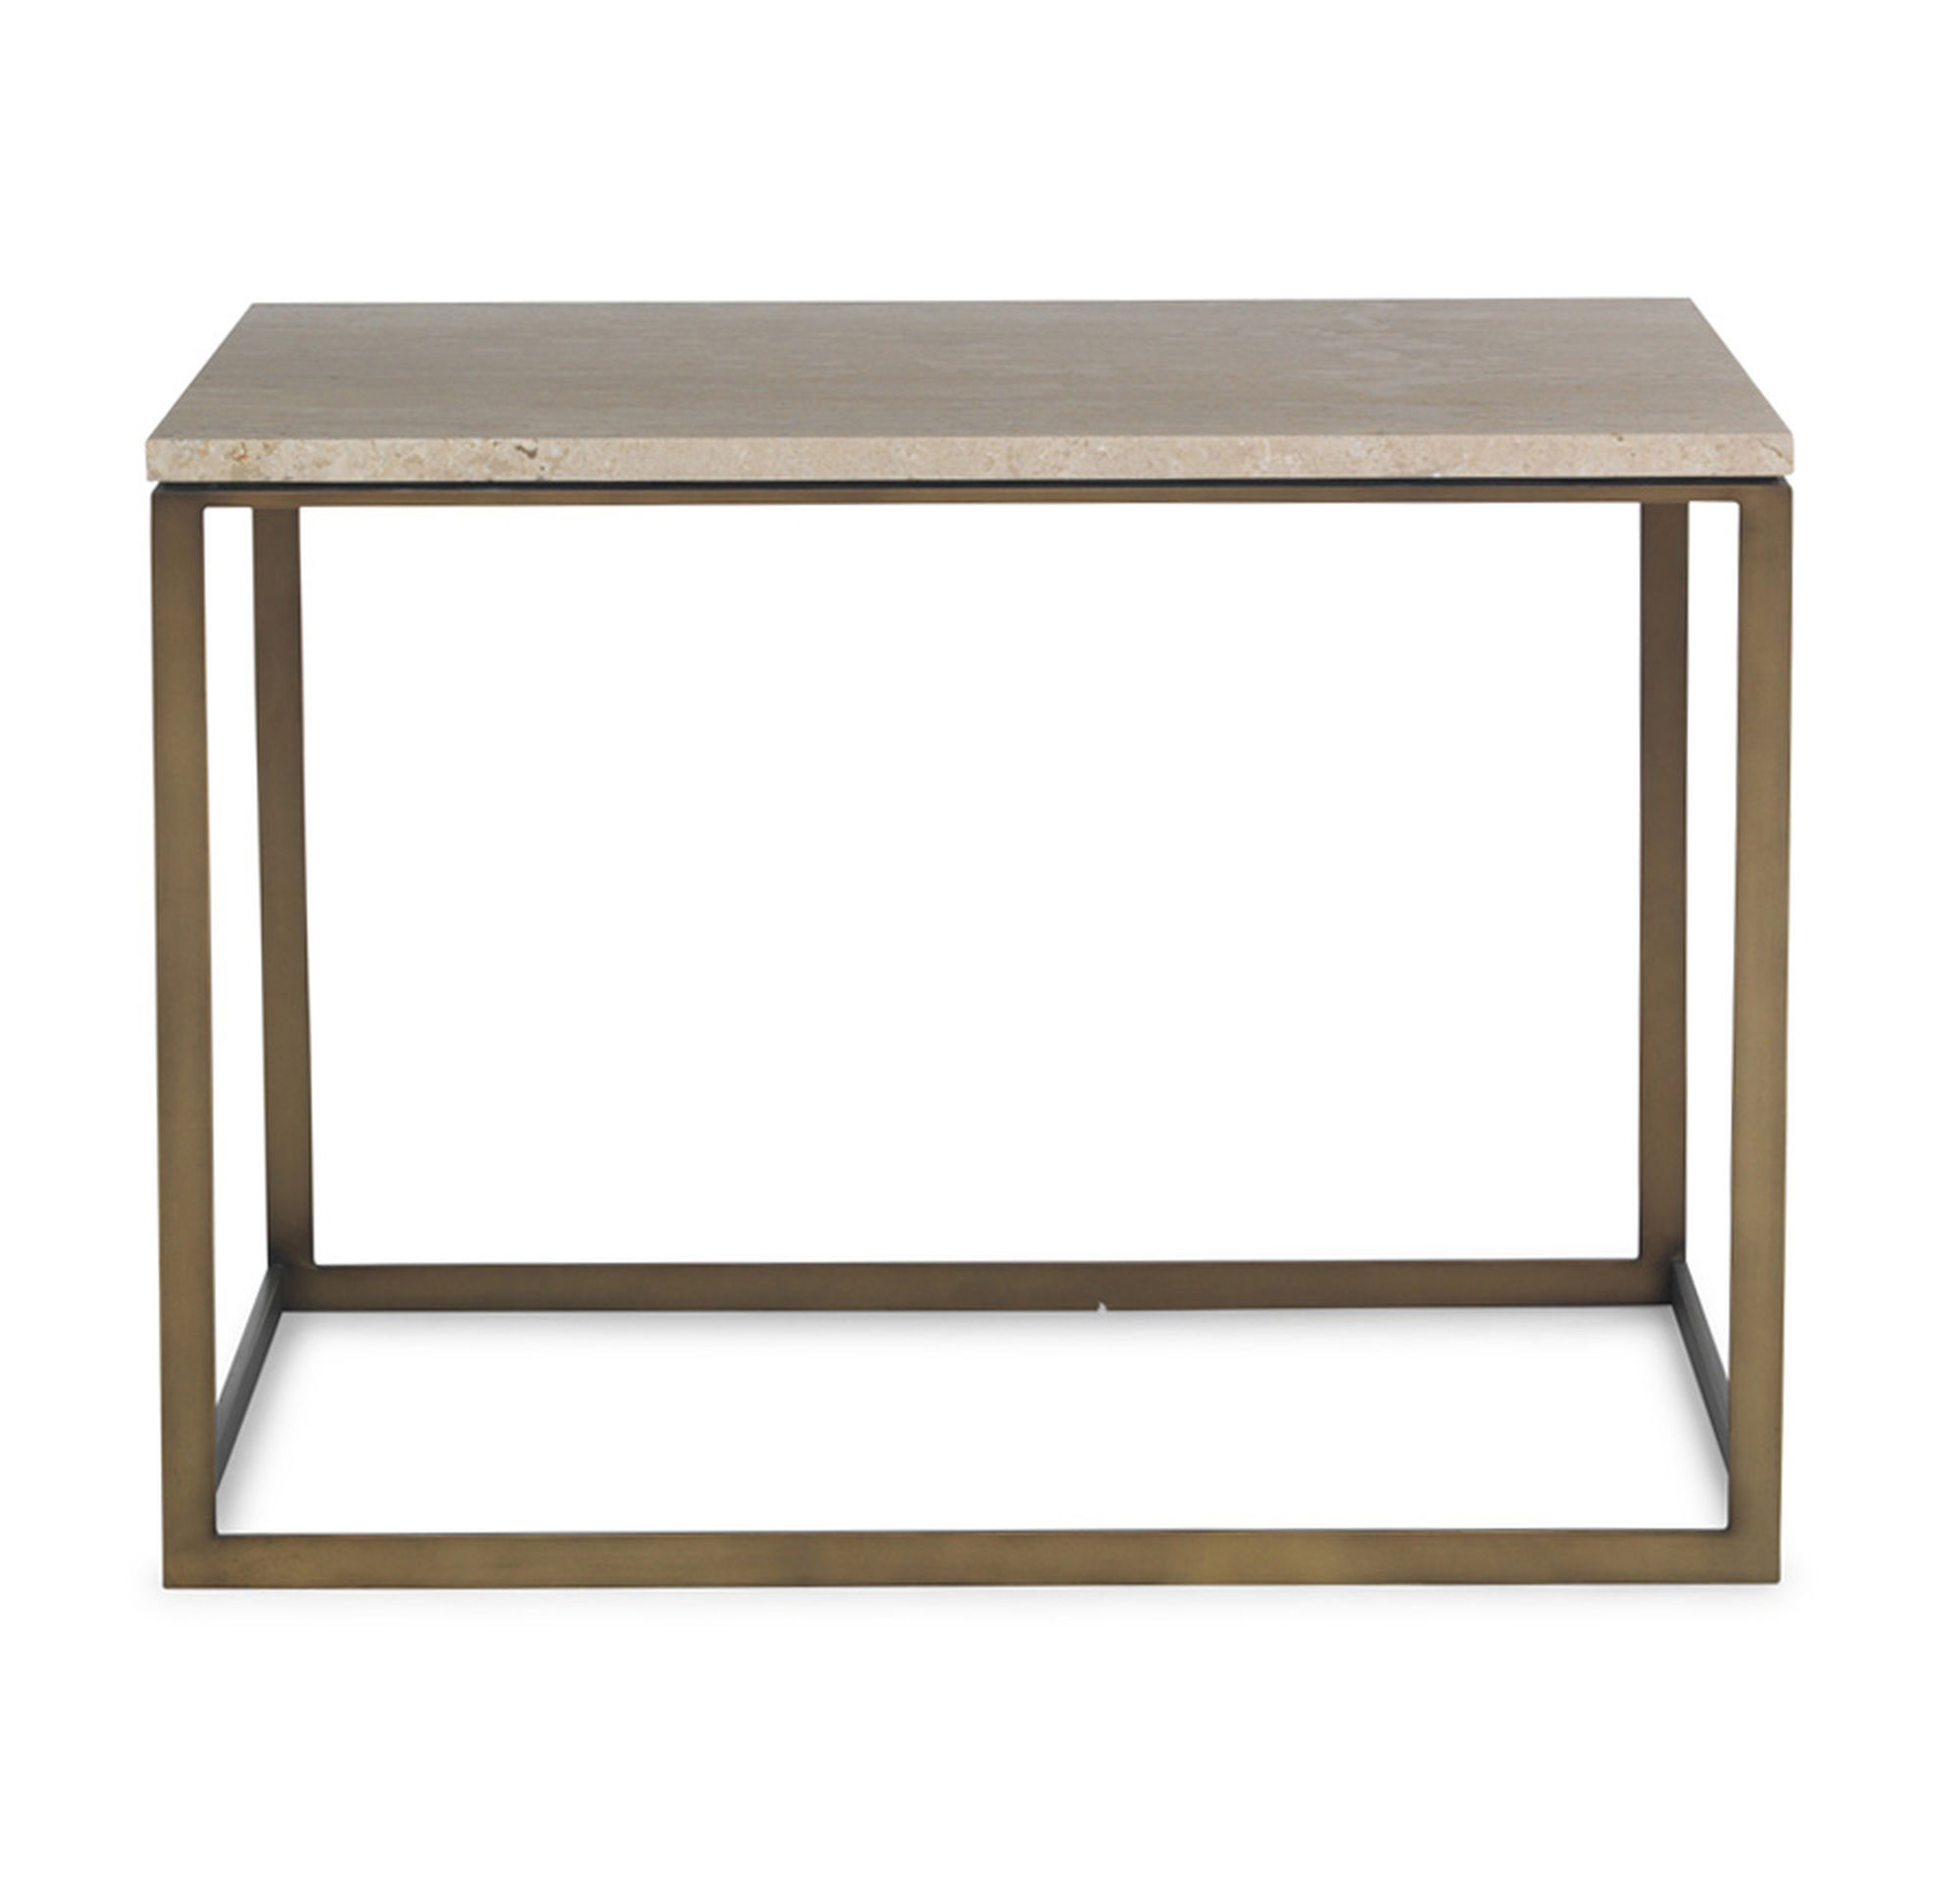 allure side table stb umbrella accent black cherry end argos nest tables bbq grill grey marble top coffee butcher block island square lucite wall decor ideas pub bar metal corner